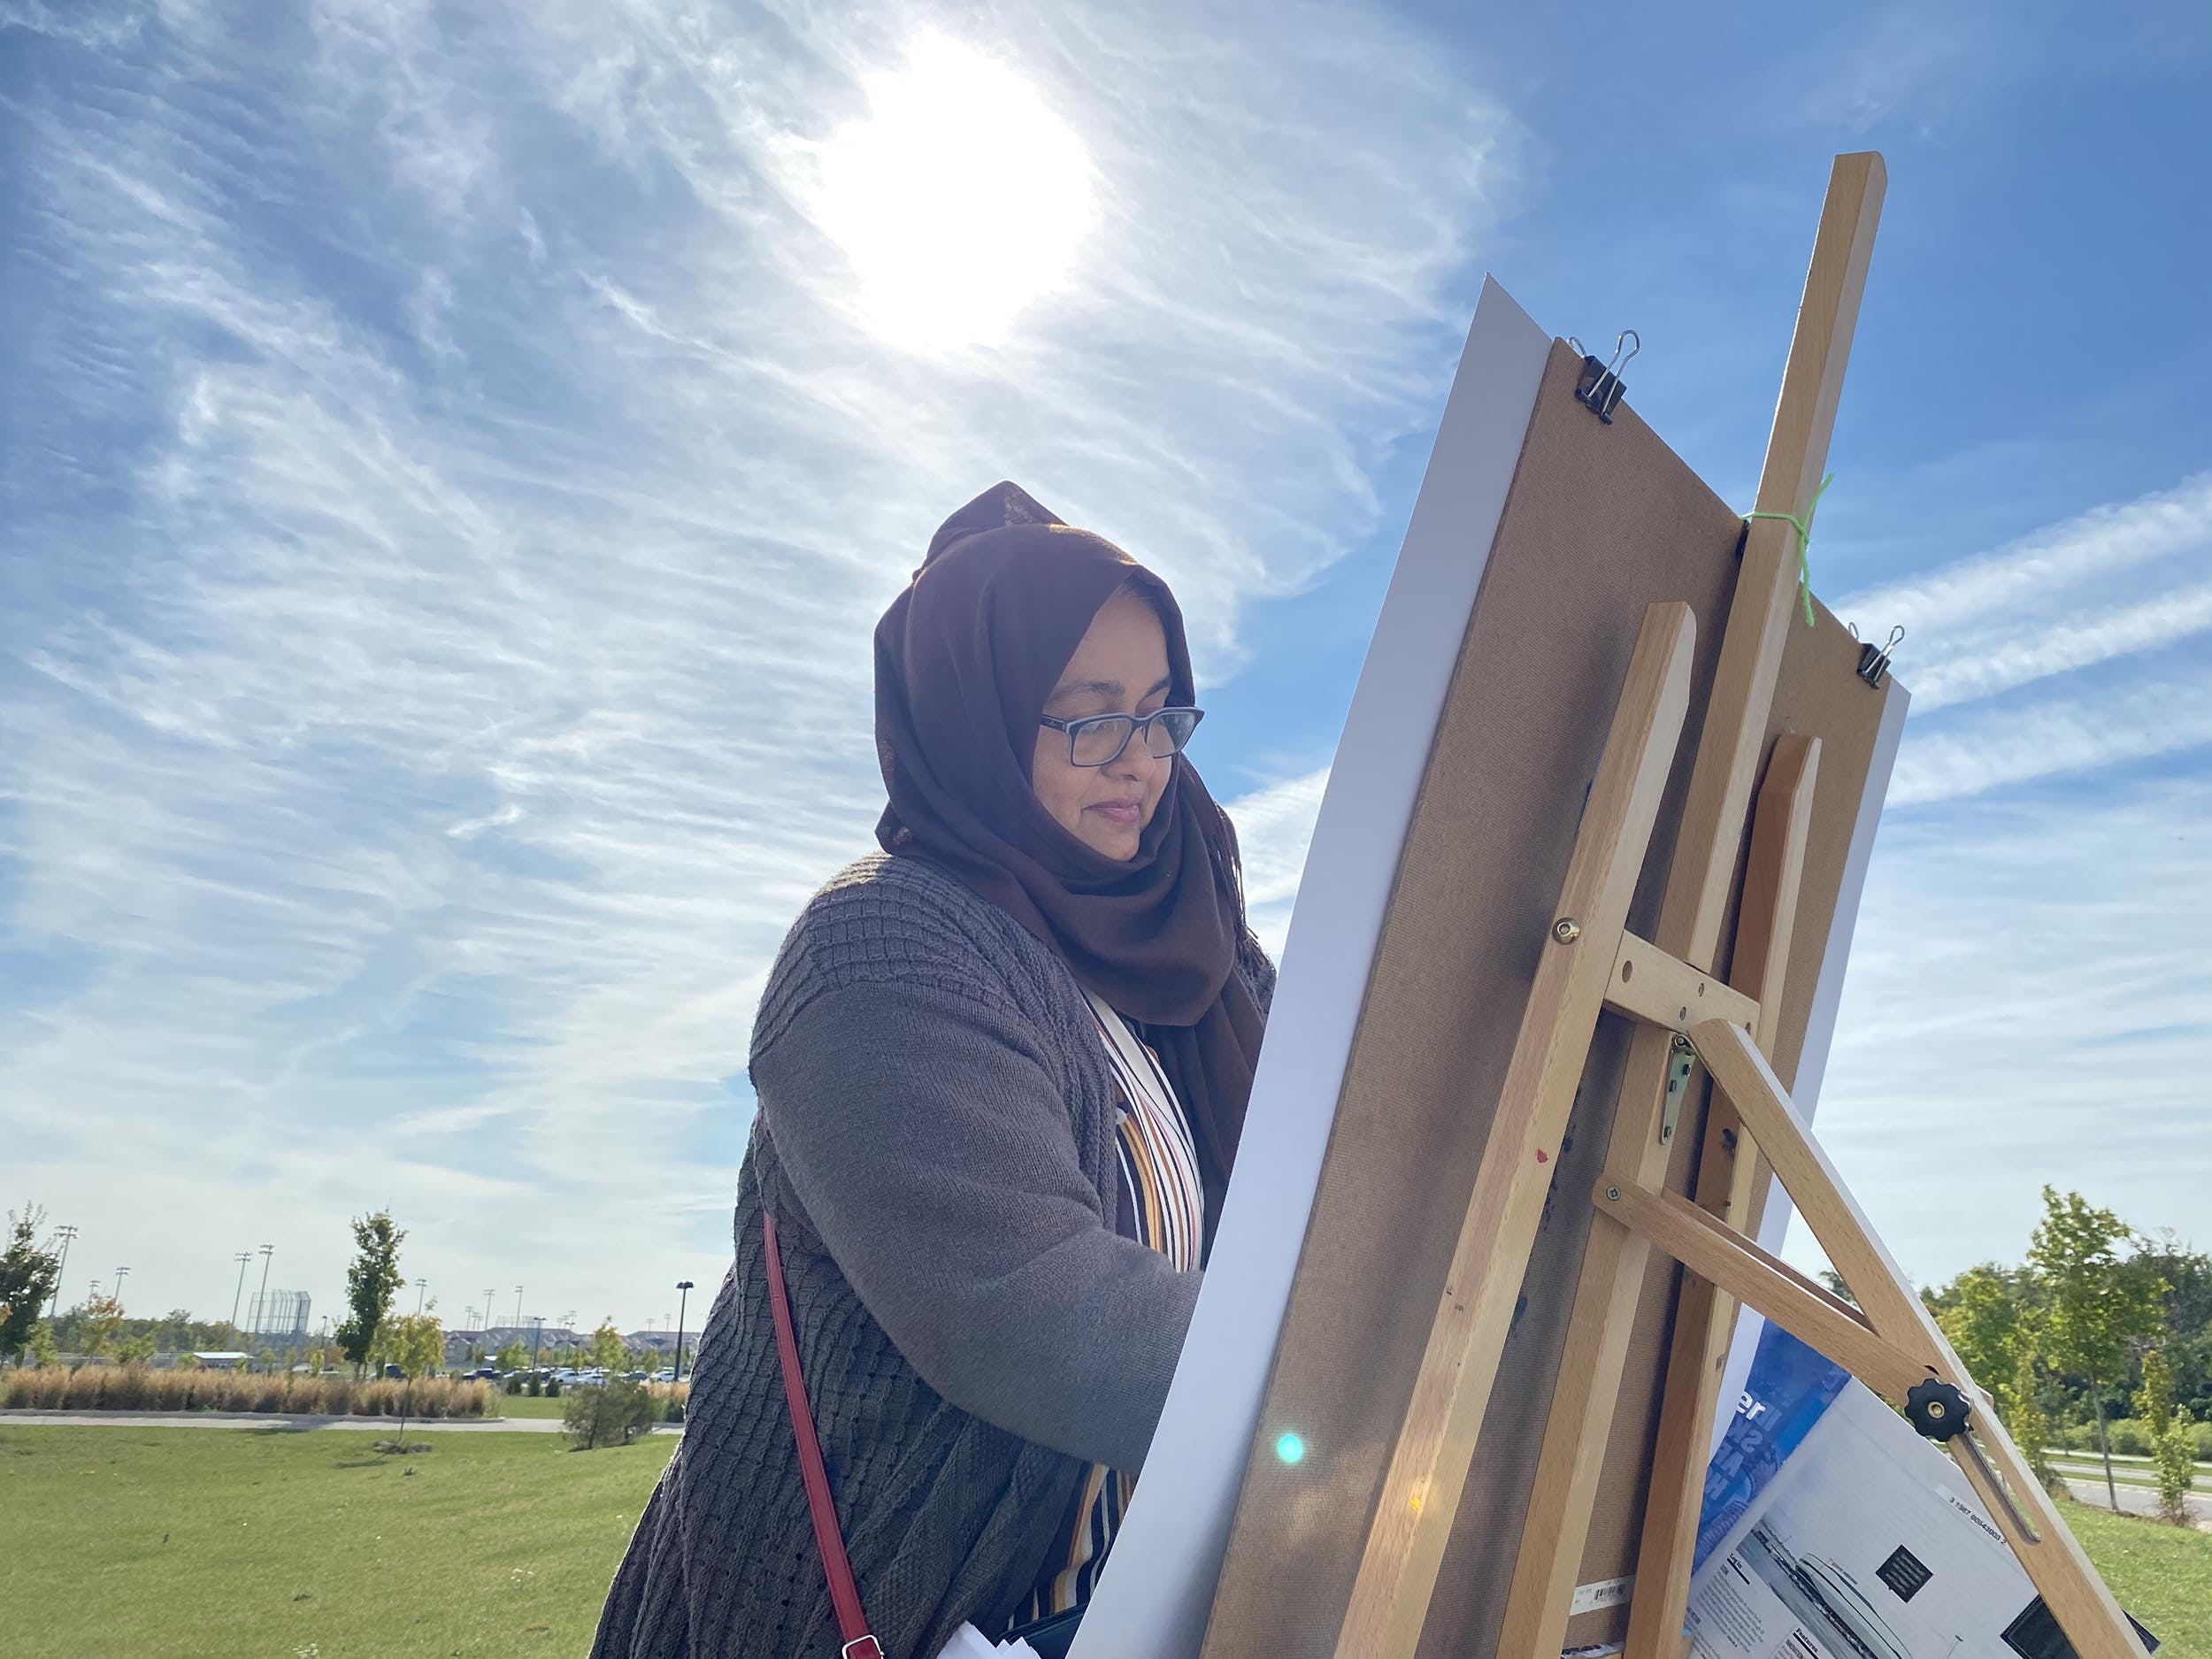 Nargis working at an easel.